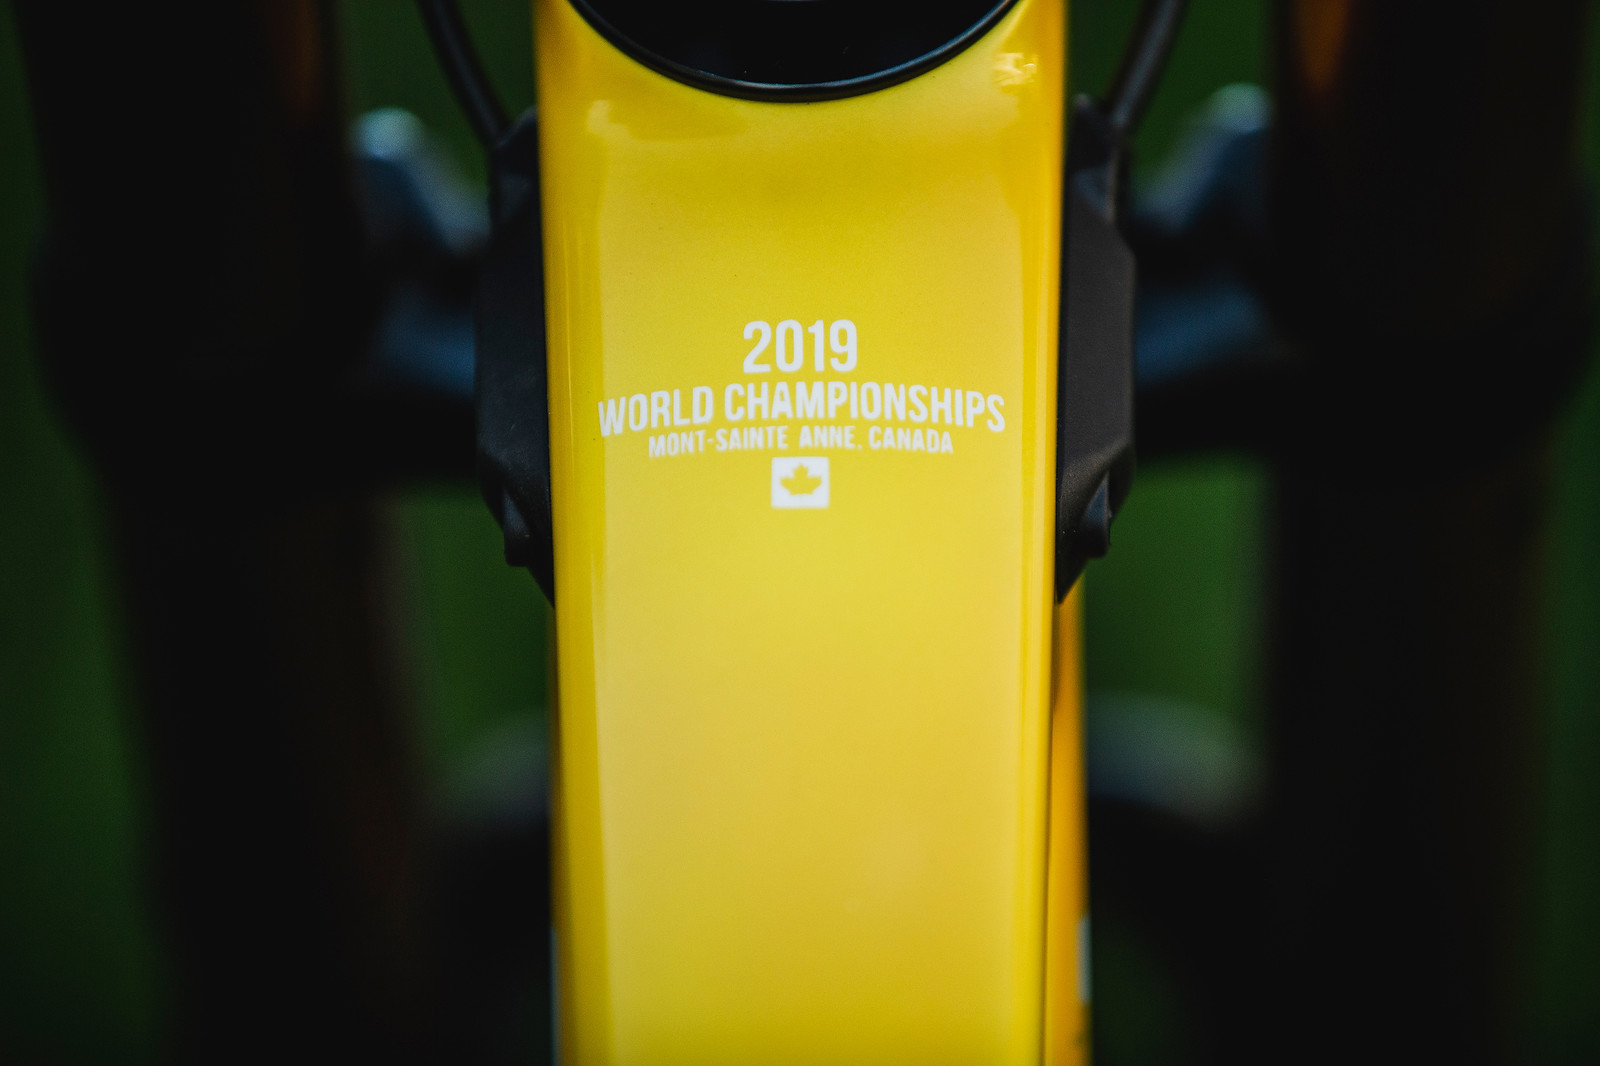 Matt Walker's Saracen Myst at 2019 Worlds MSA - Matt Walker's Saracen Myst at 2019 Worlds MSA - Mountain Biking Pictures - Vital MTB